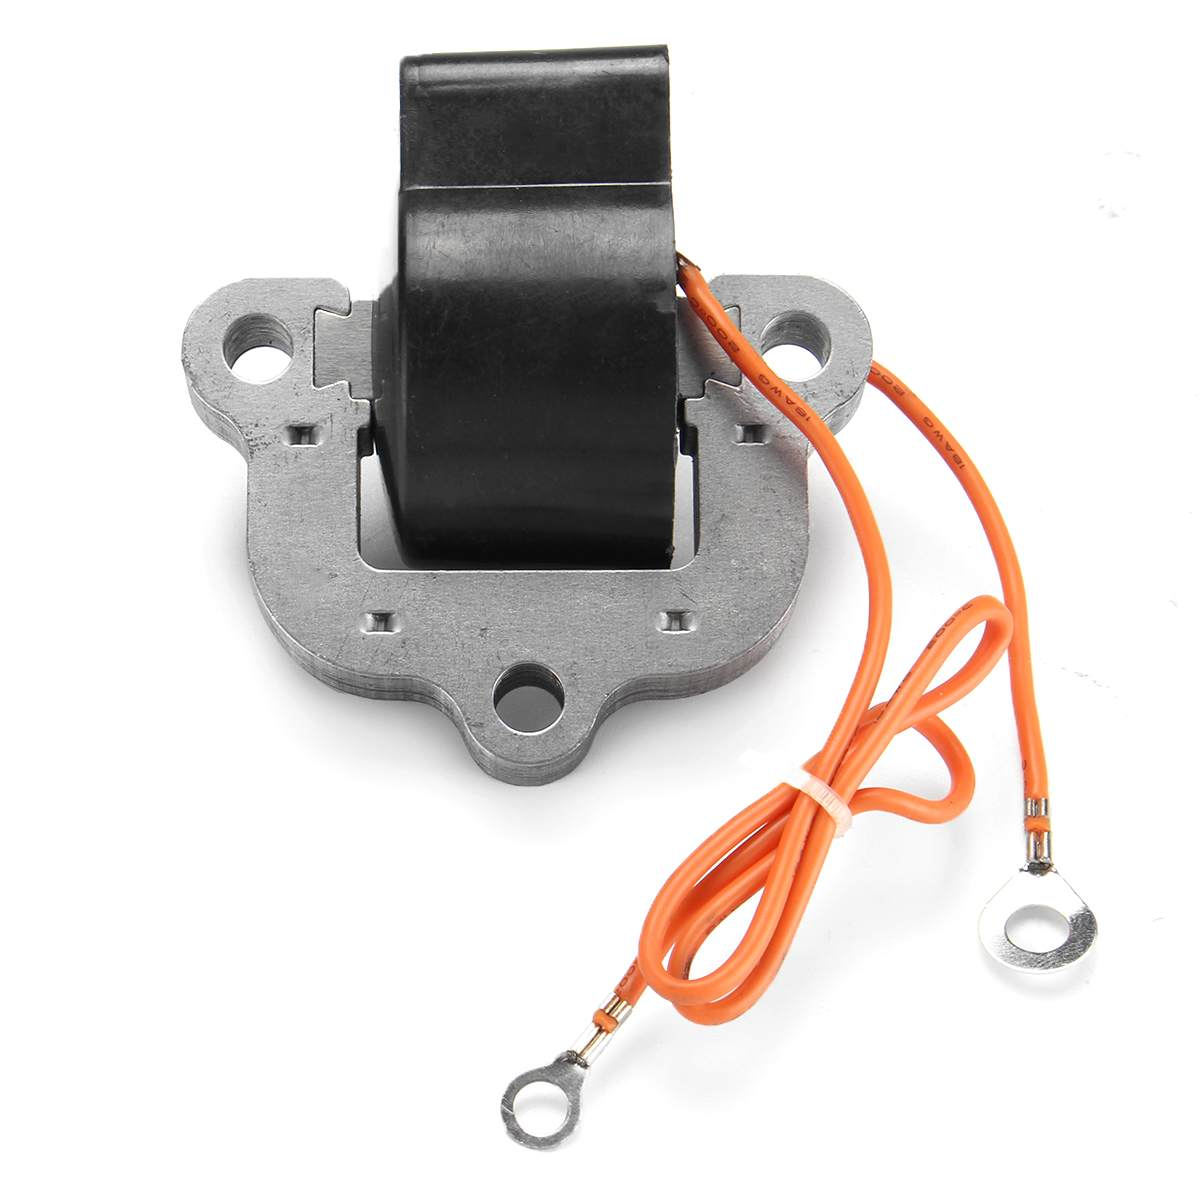 High Performance New Ignition Coil For Johnson Evinrude For 9.9 15 40 For HP 1974-1976 18-5196High Performance New Ignition Coil For Johnson Evinrude For 9.9 15 40 For HP 1974-1976 18-5196